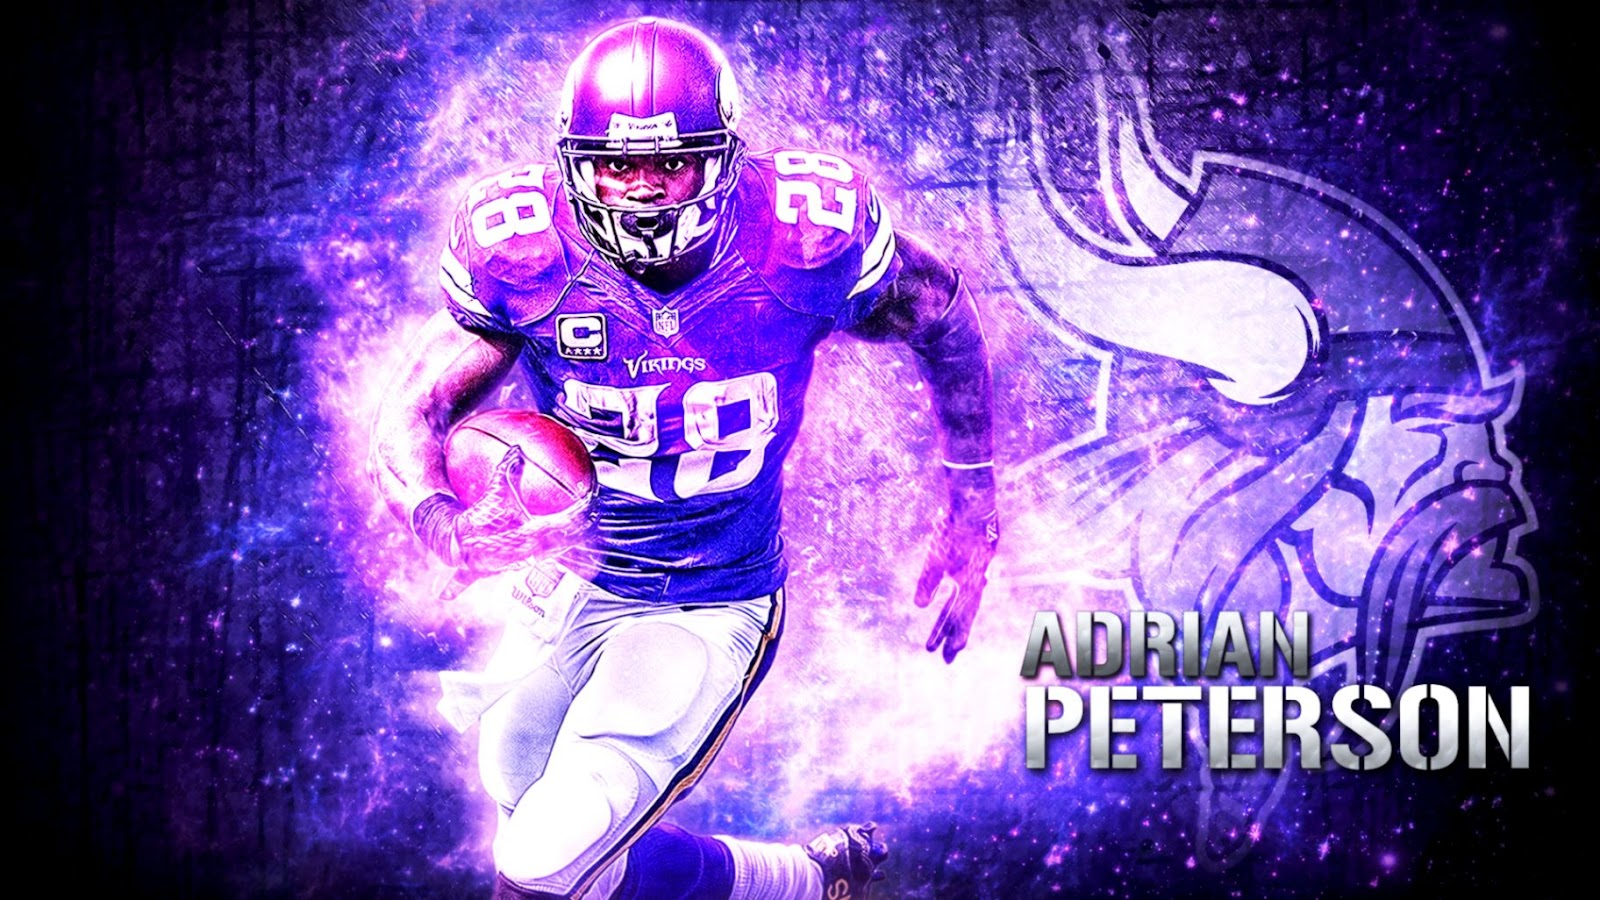 File Name Adrian Peterson Wallpapers perkyseed